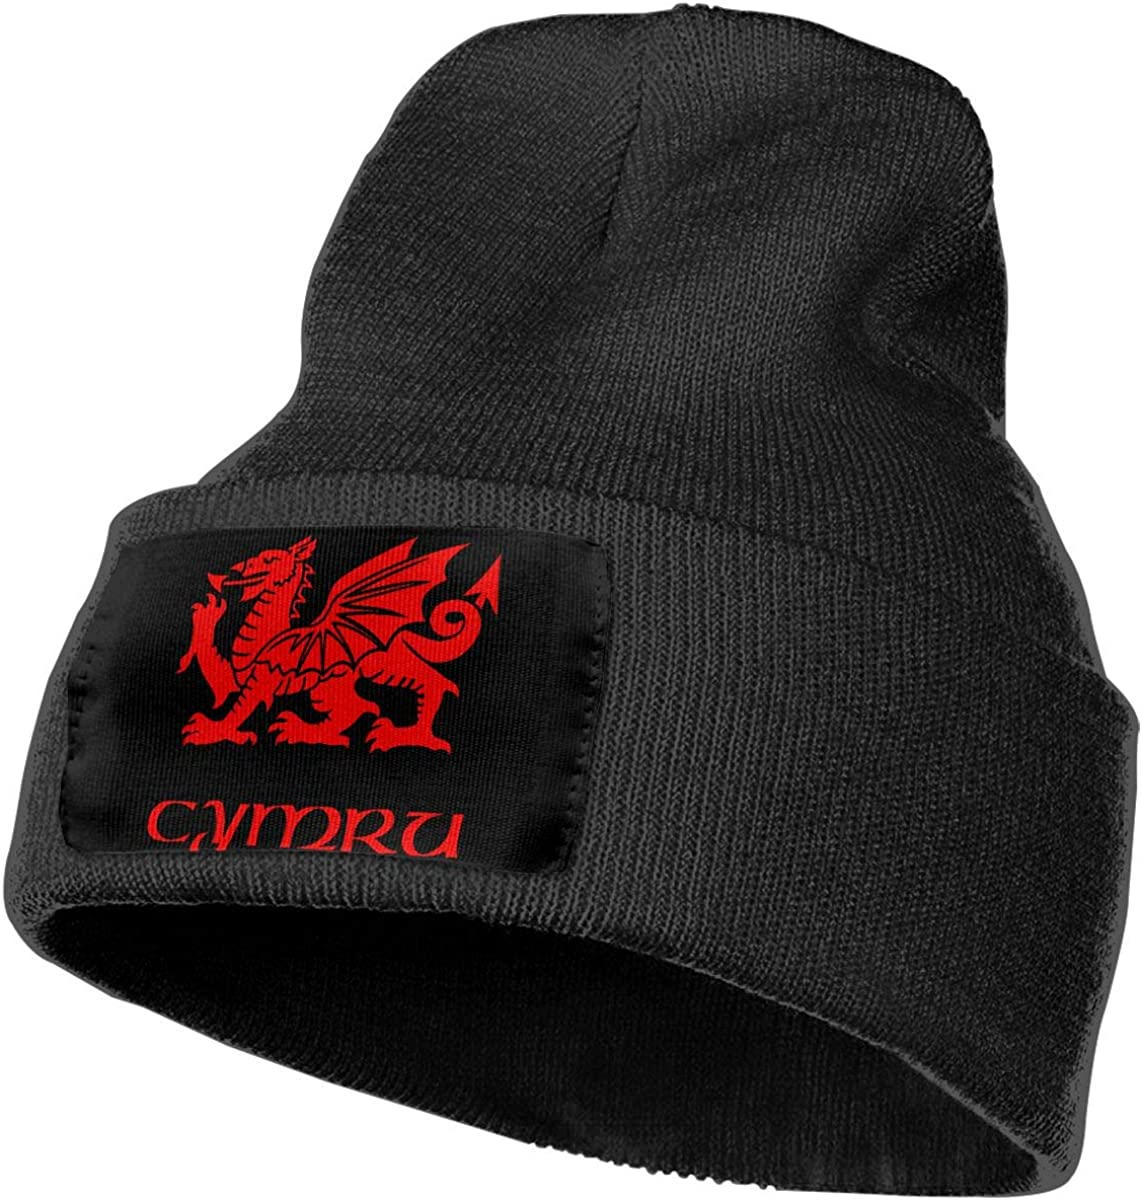 Wales Welsh Dragon Men/&Women Warm Winter Knit Plain Beanie Hat Skull Cap Acrylic Knit Cuff Hat